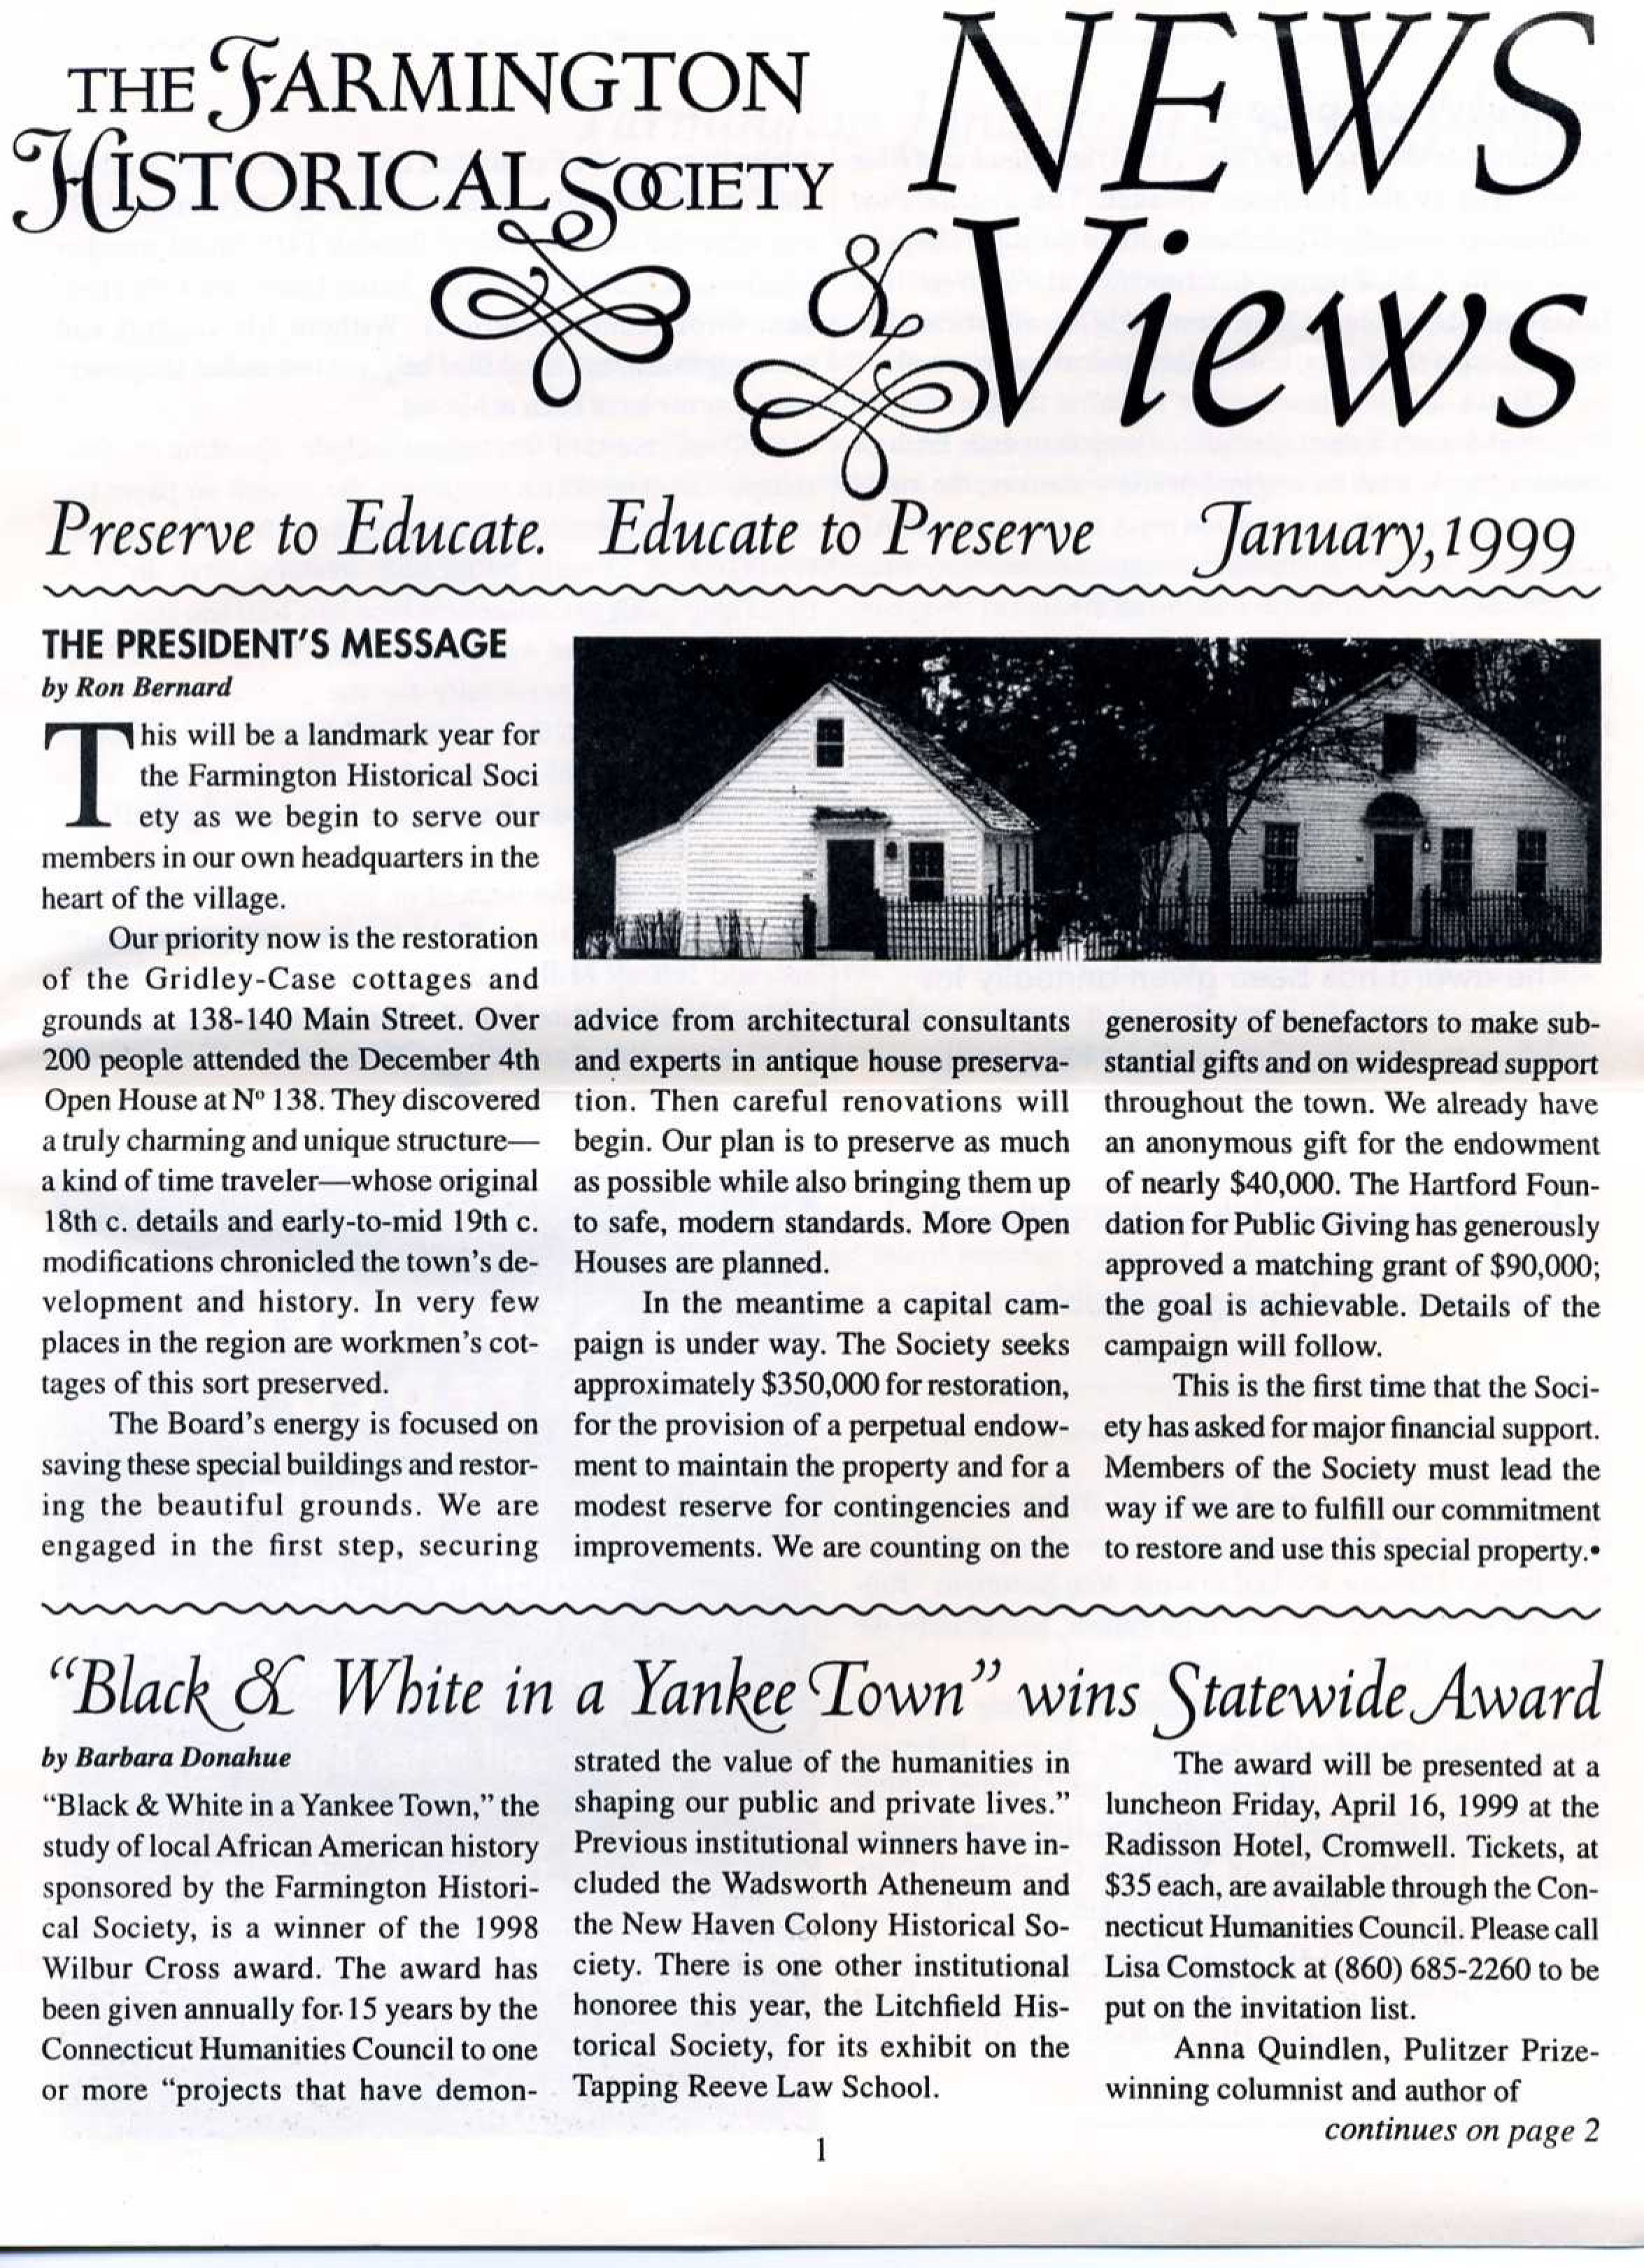 http://fhs-ct.org/1999/01/10/january-1999-newsletter/